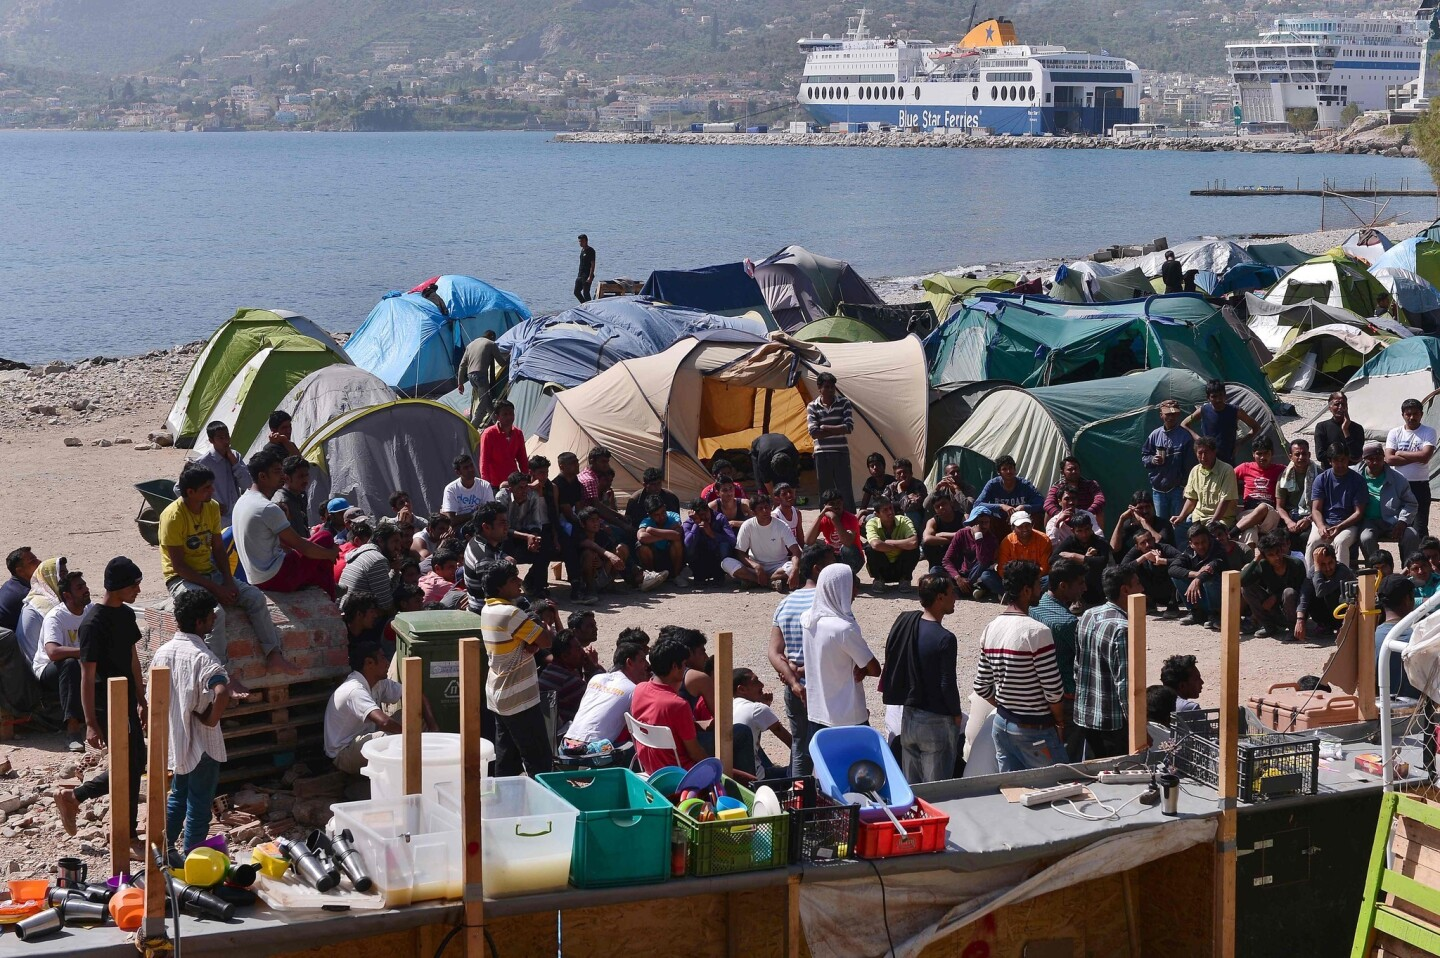 Pope Francis to visit Lesbos, Greece, amid refugee crisis